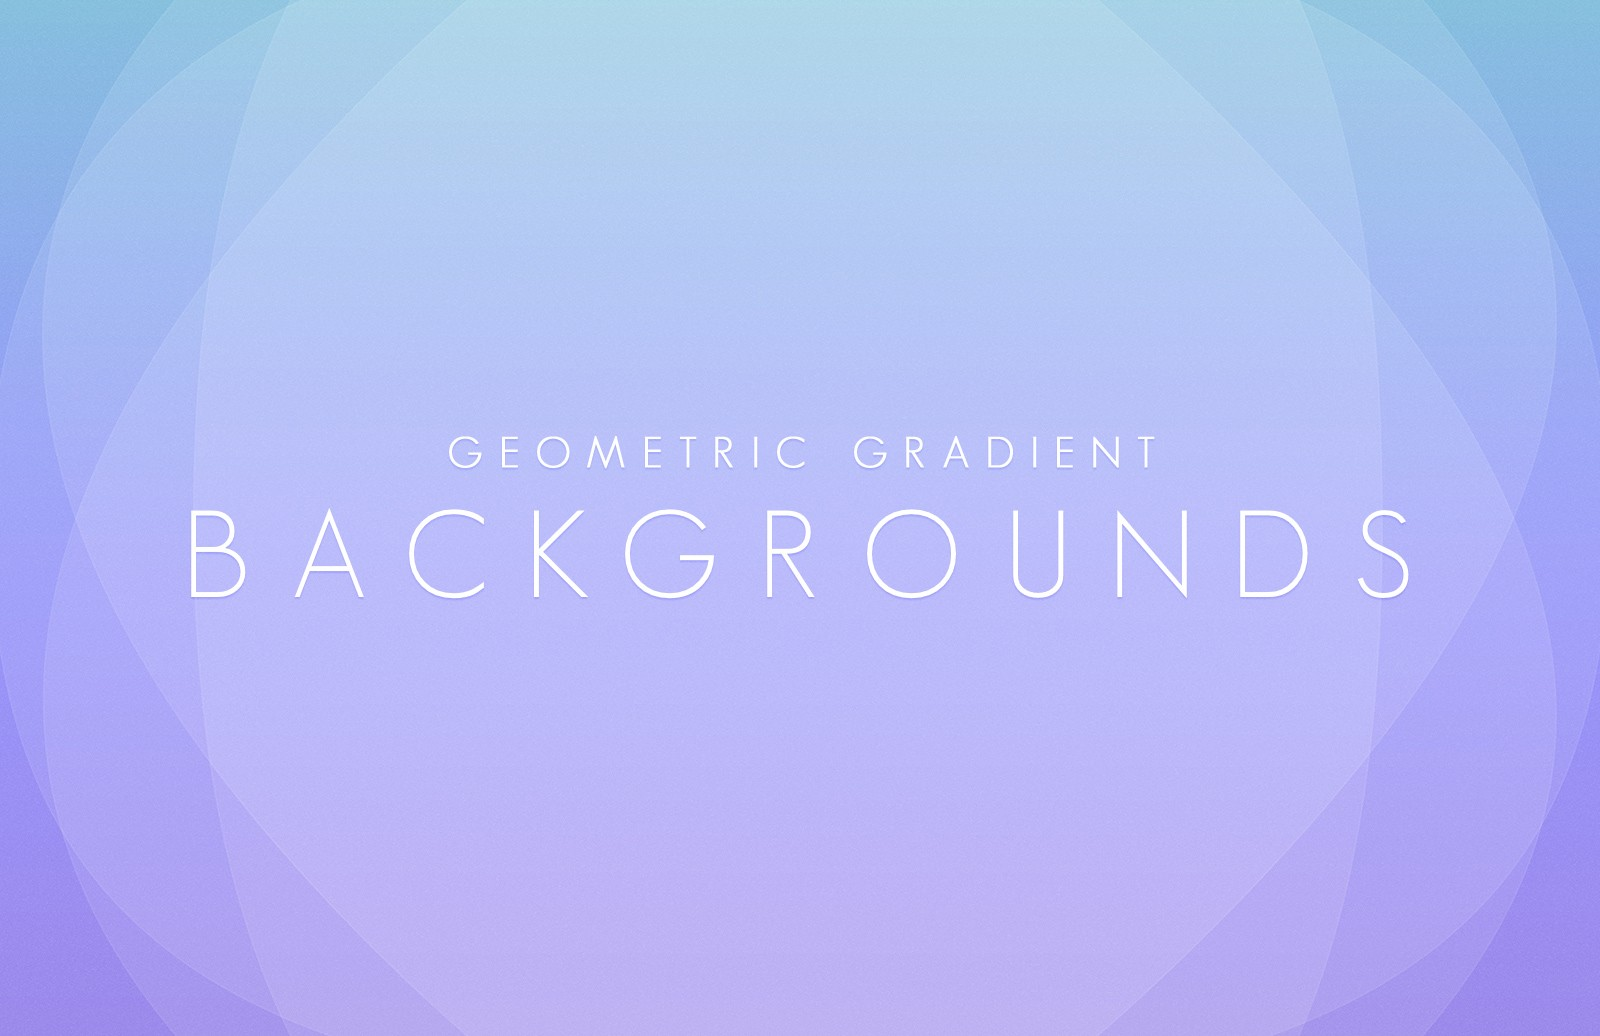 Large Geometric  Gradient  Backgrounds  Preview 2